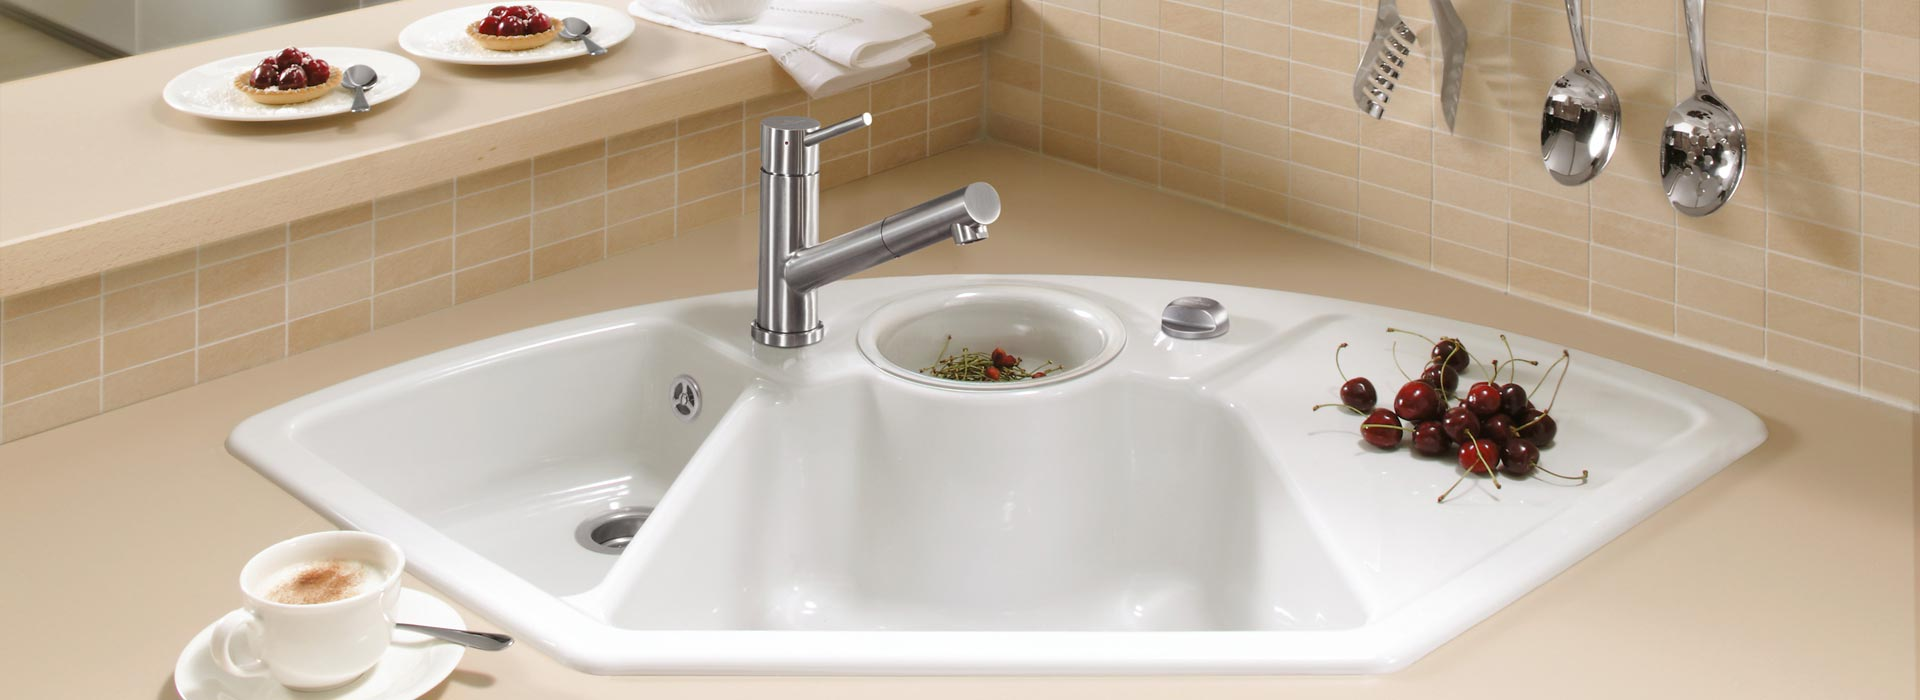 High quality corner sink from Villeroy & Boch